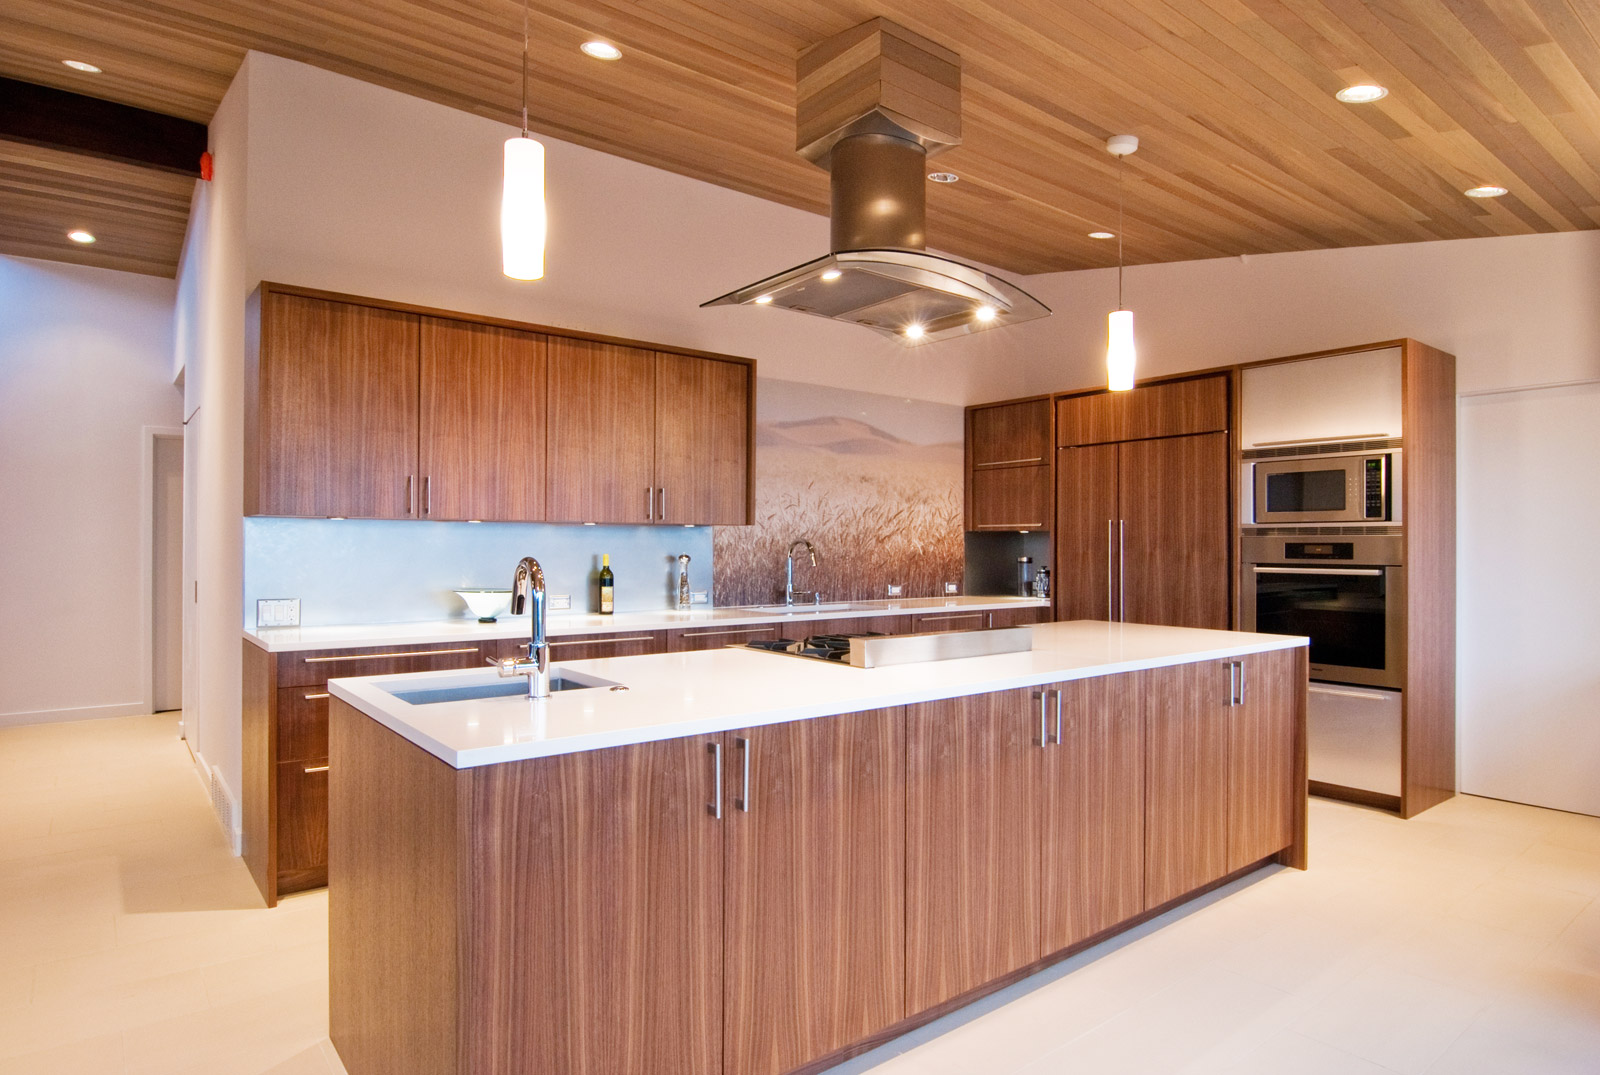 BUILD LLC OM Kitchen 01#. Concept: Appliance Island